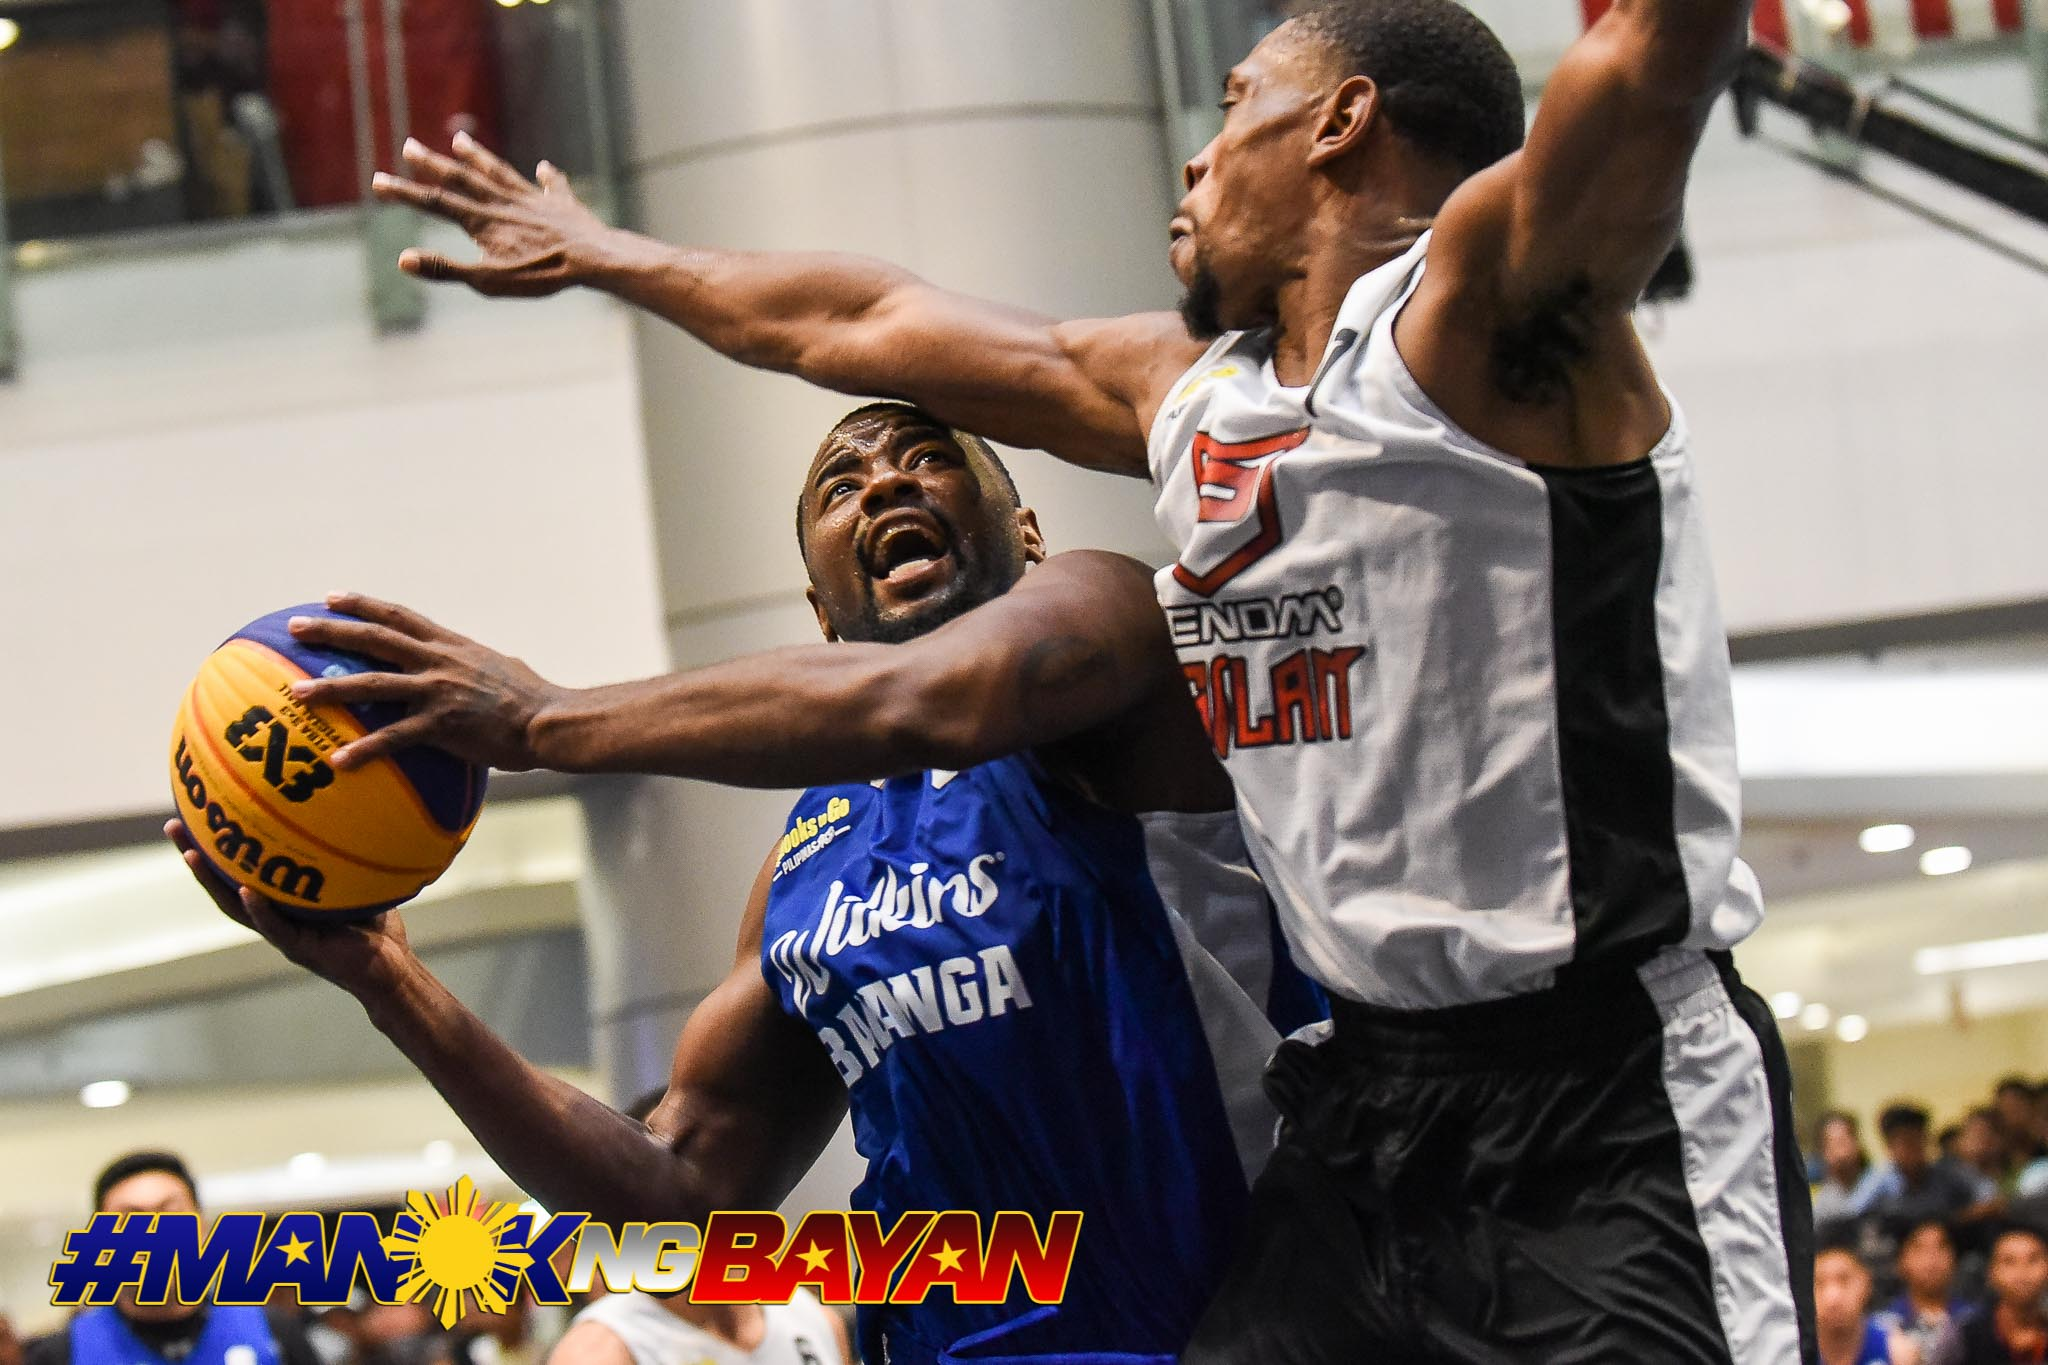 Tiebreaker Times Balanga finds fourth man for Bucharest Challenger in Franklin's good pal 3x3 Basketball Chooks-to-Go Pilipinas 3x3 News  Travis Franklin Lamar Roberson Eric Altamirano Balanga Chooks 2019 Chooks-to-Go Pilipinas 3x3 Season 2019 Bucharest Challenger